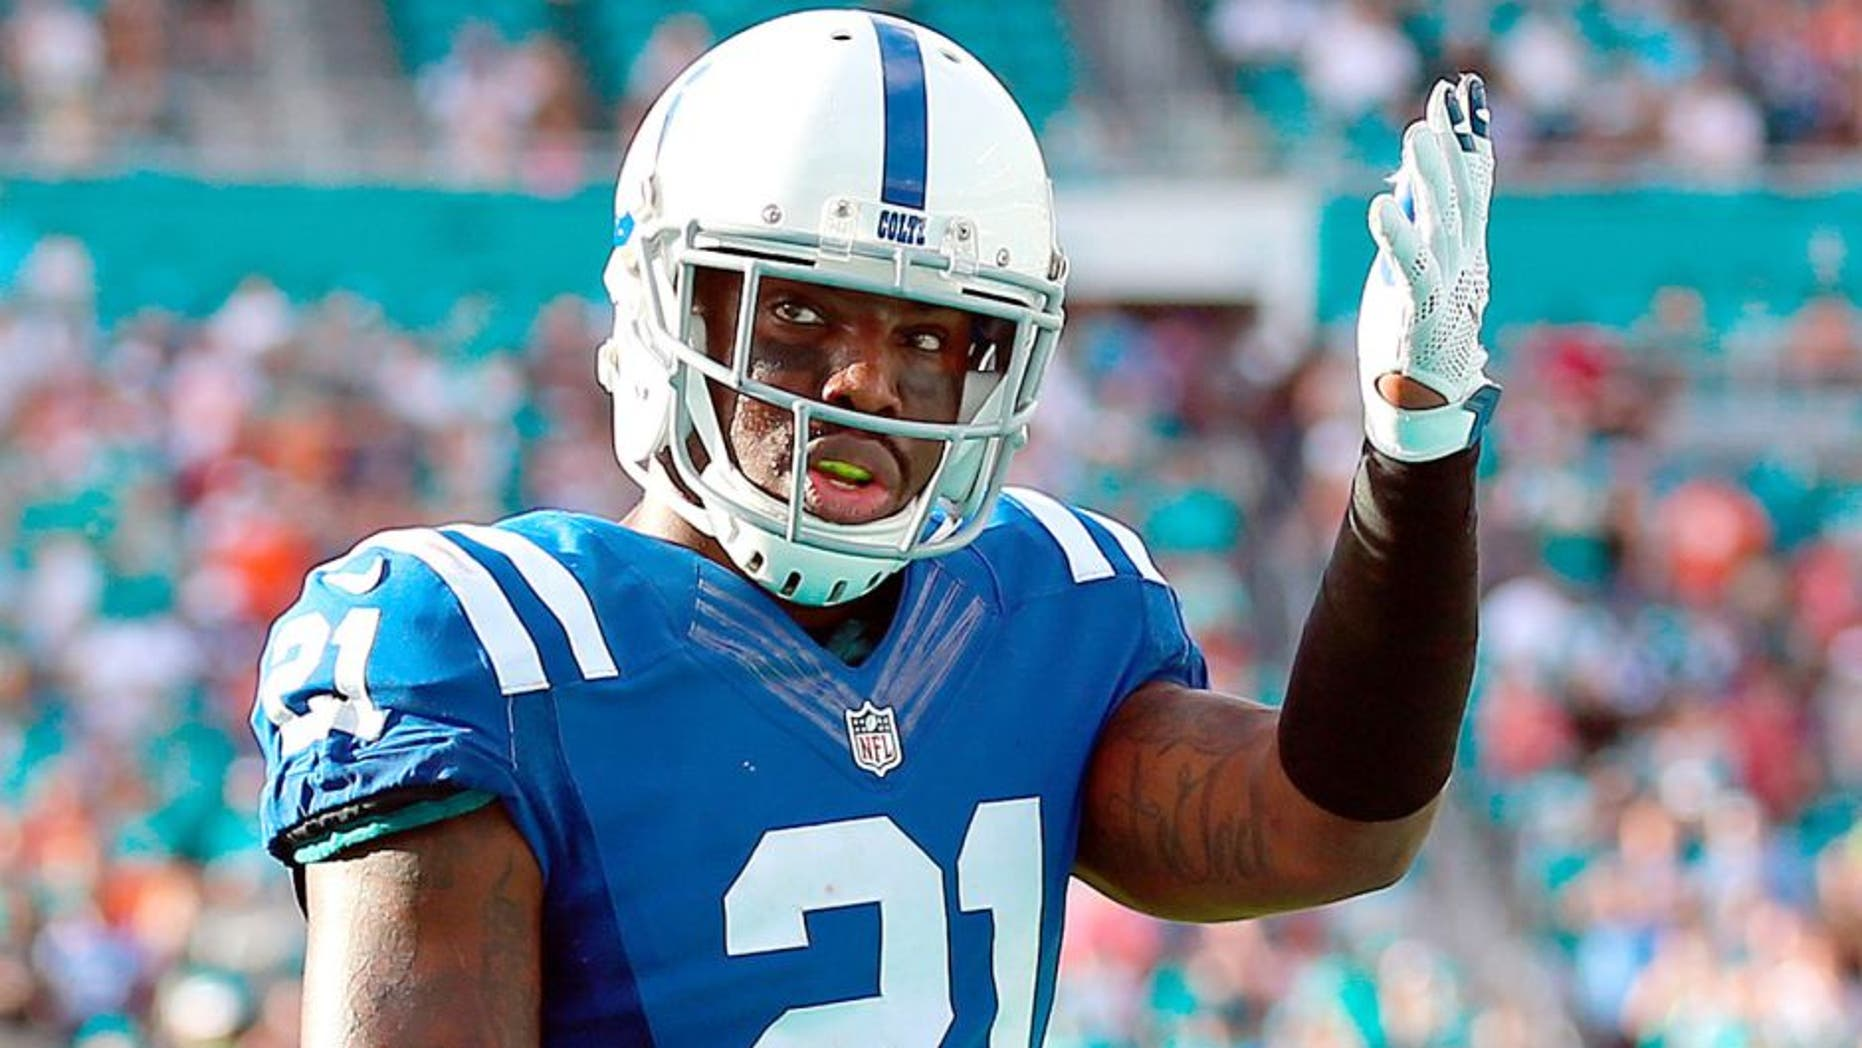 Dec 27, 2015; Miami Gardens, FL, USA; Indianapolis Colts cornerback Vontae Davis (21) waves to the crowd during the second half against the Miami Dolphins at Sun Life Stadium. The Colts won 18-12. Mandatory Credit: Steve Mitchell-USA TODAY Sports